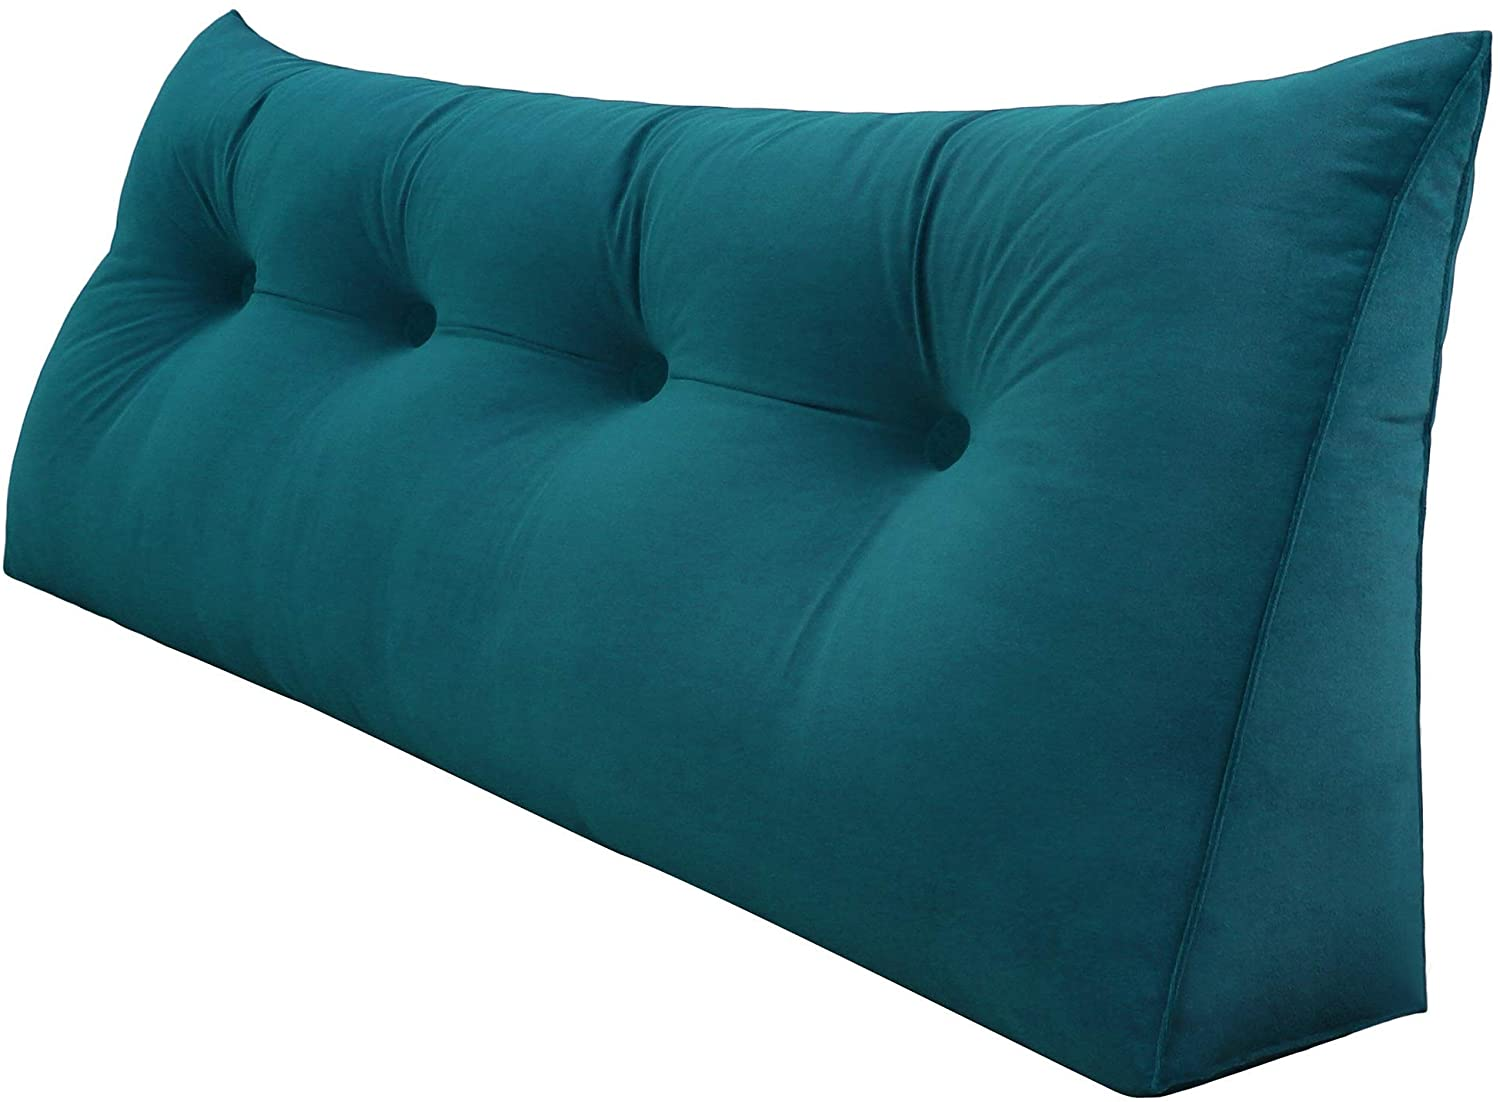 Roner Large PP-Cotton Filled Triangular Wedge Cushion Bed Backrest Positioning Support Upholstered Headboard Sofa Bed Daybed Reading Pillow Removable Washable Cover 47 Inches Royal Blue